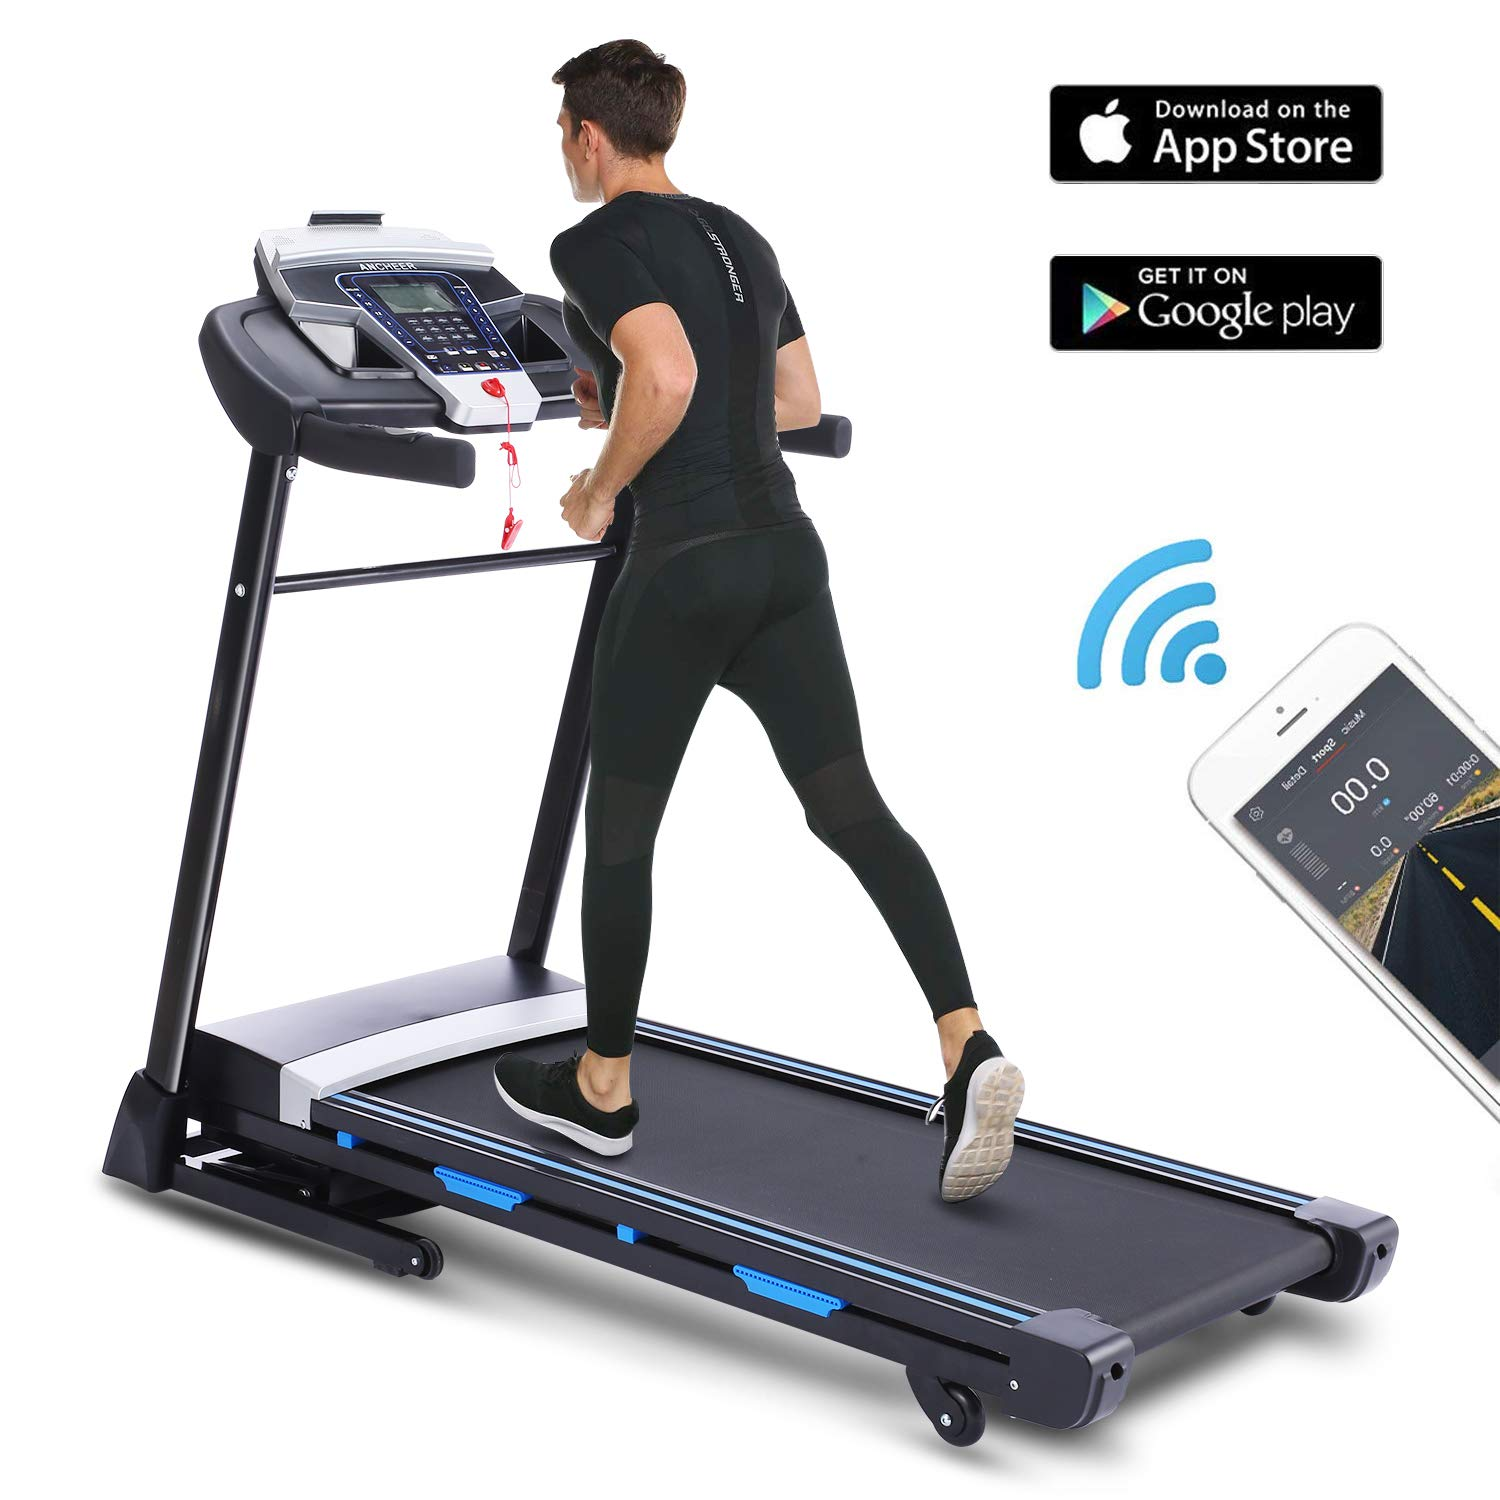 ANCHEER Folding Treadmill with APP Control, 3.25HP Automatic Incline Treadmill, Portable Treadmill Walking Running Machine with Audio Speakers for Home Gym